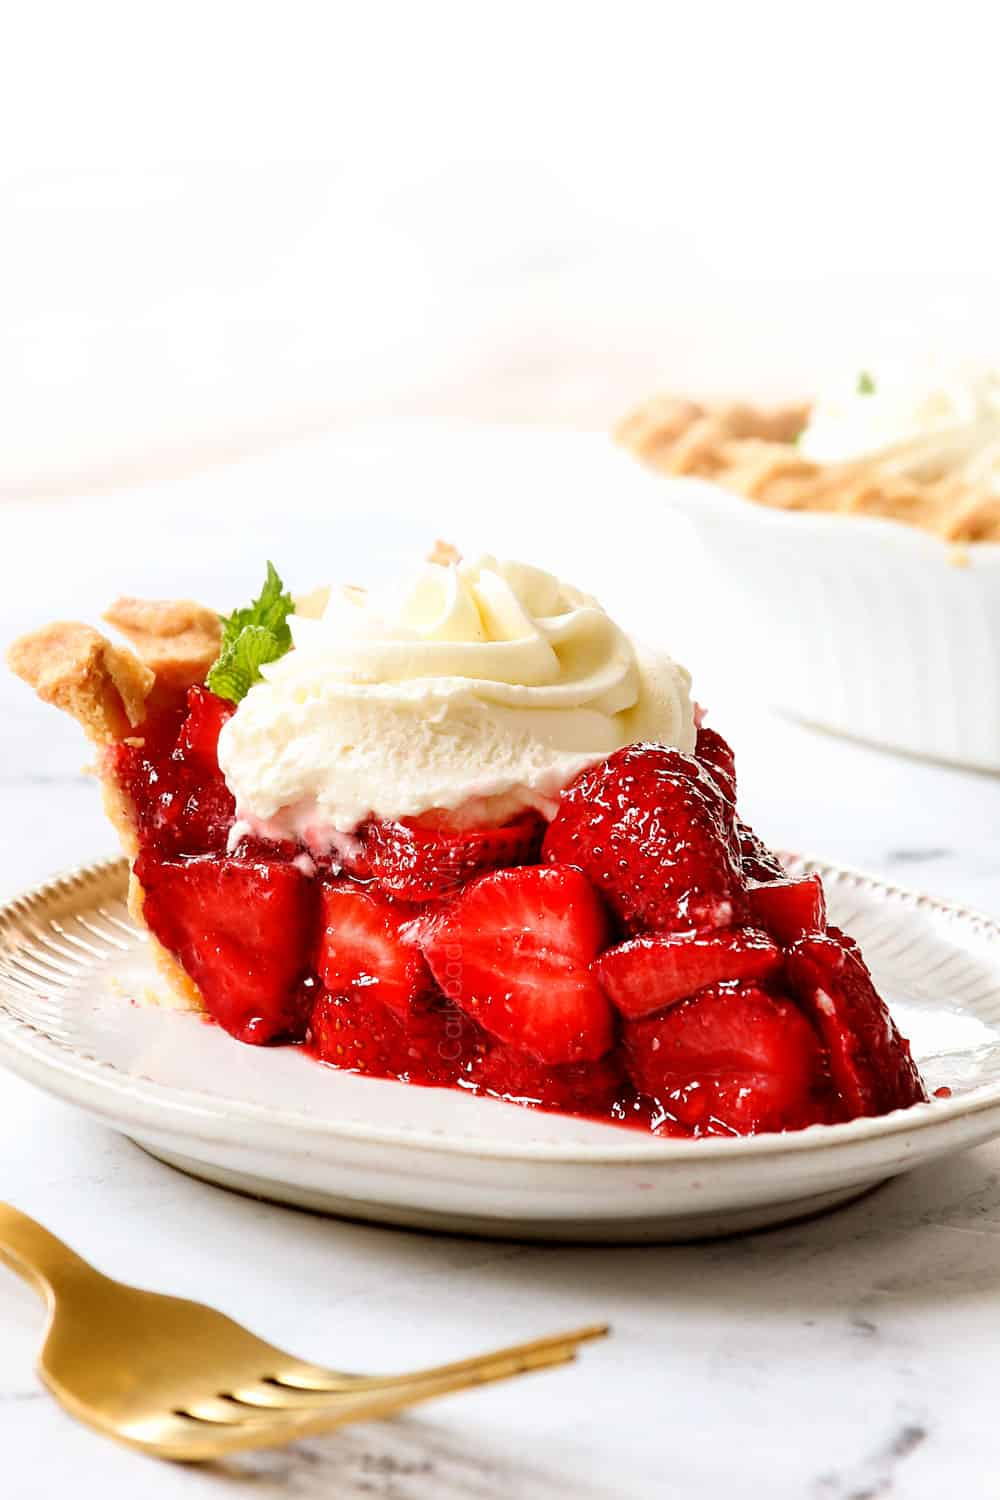 a slice of strawberry pie recipe on a plate